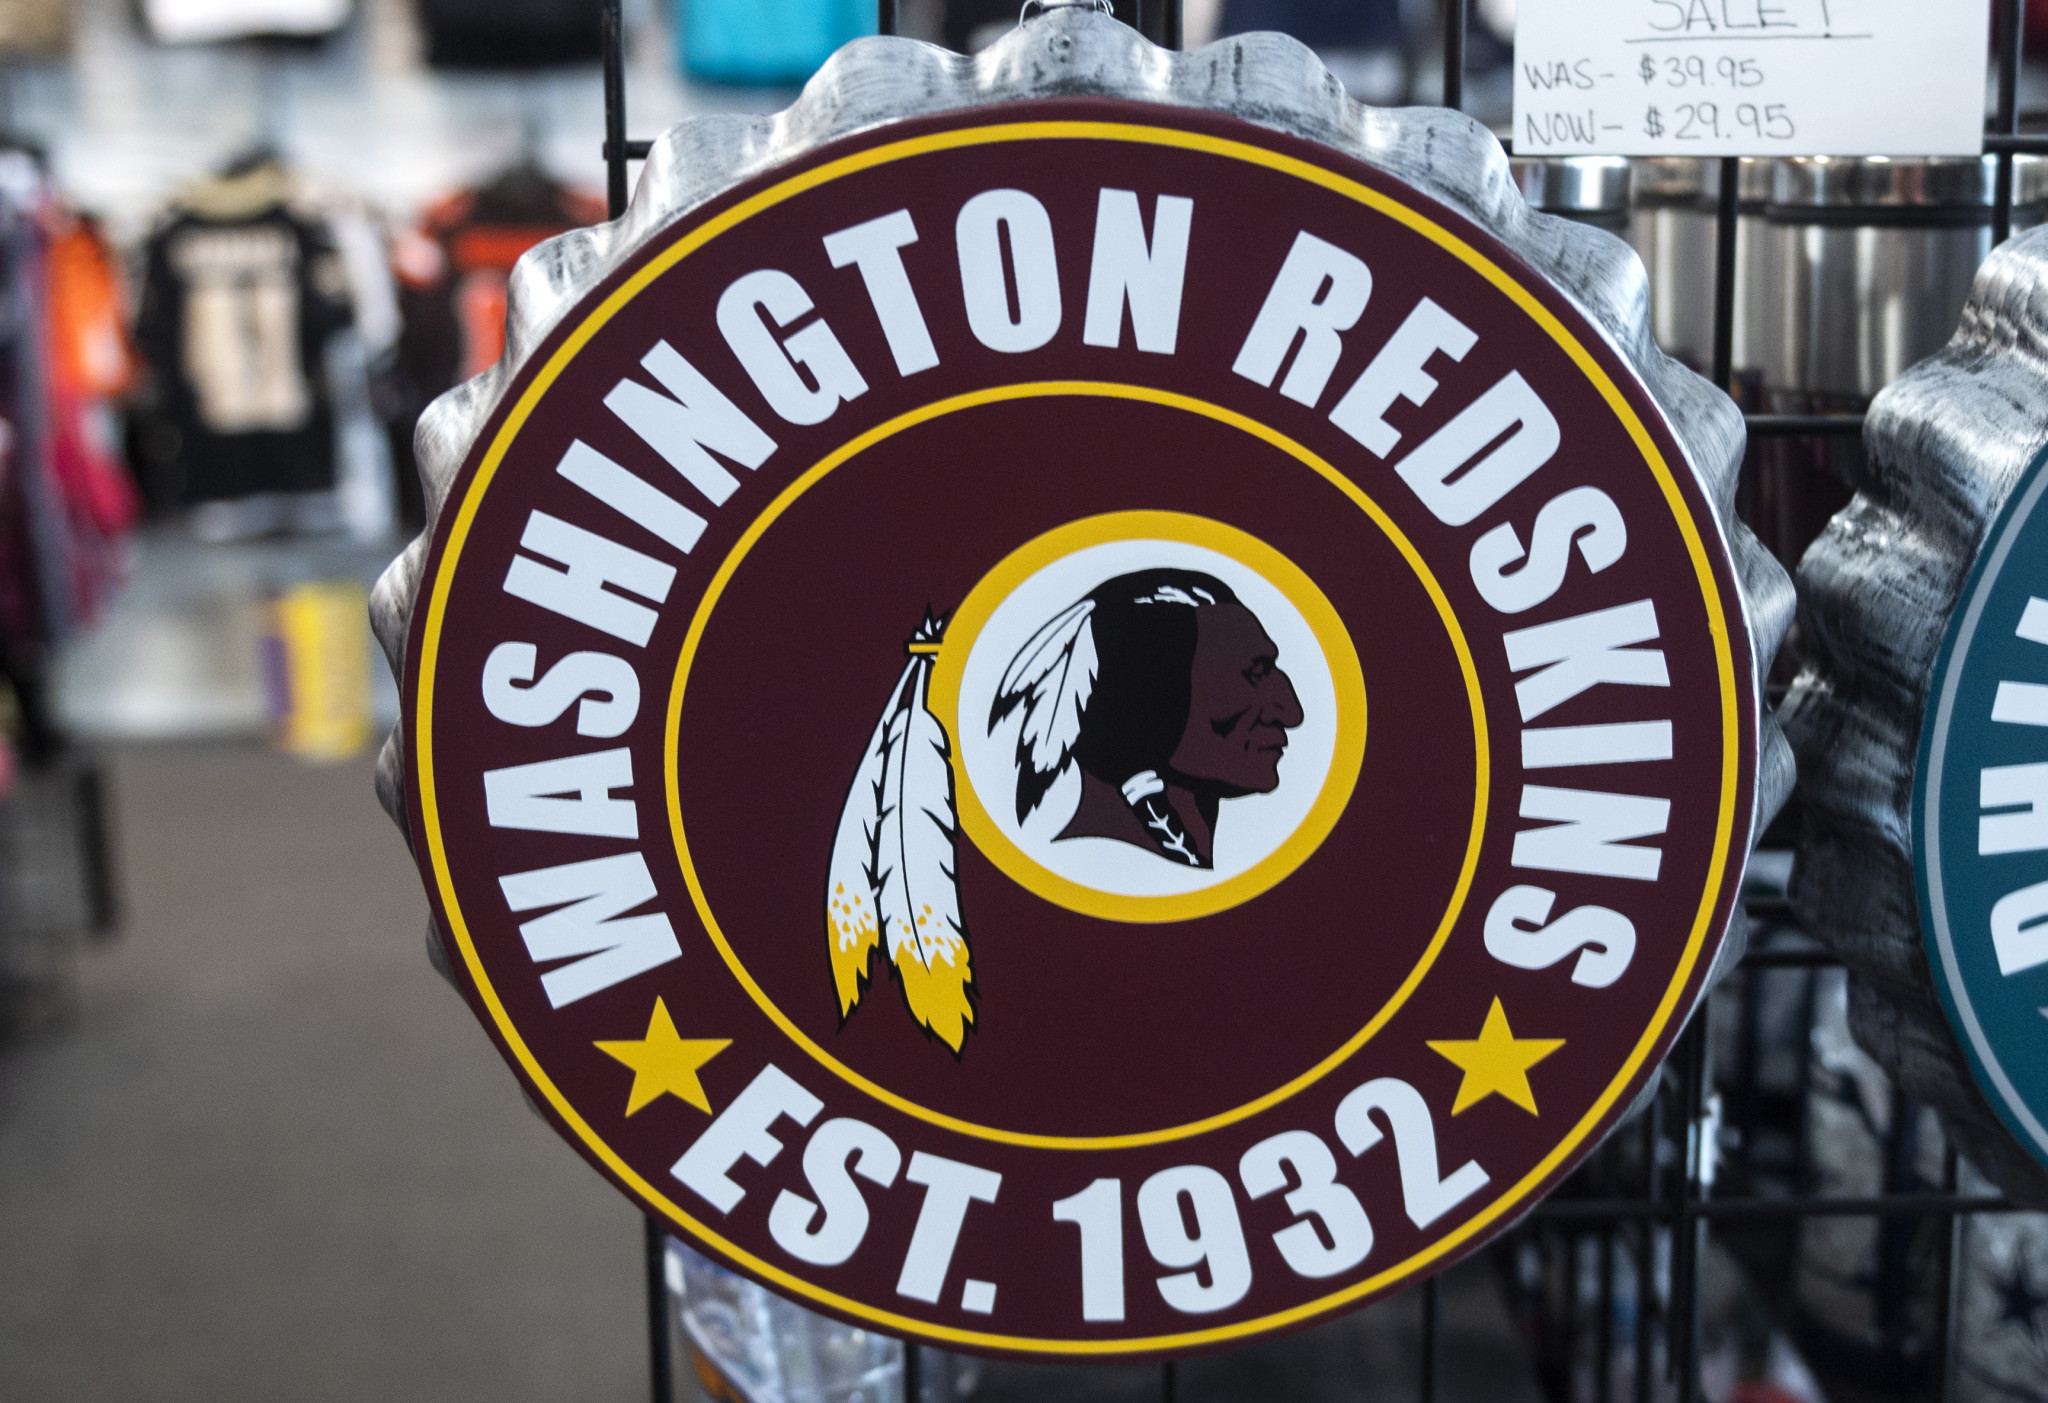 The Washington Redskins have opted to change their name ©Getty Images